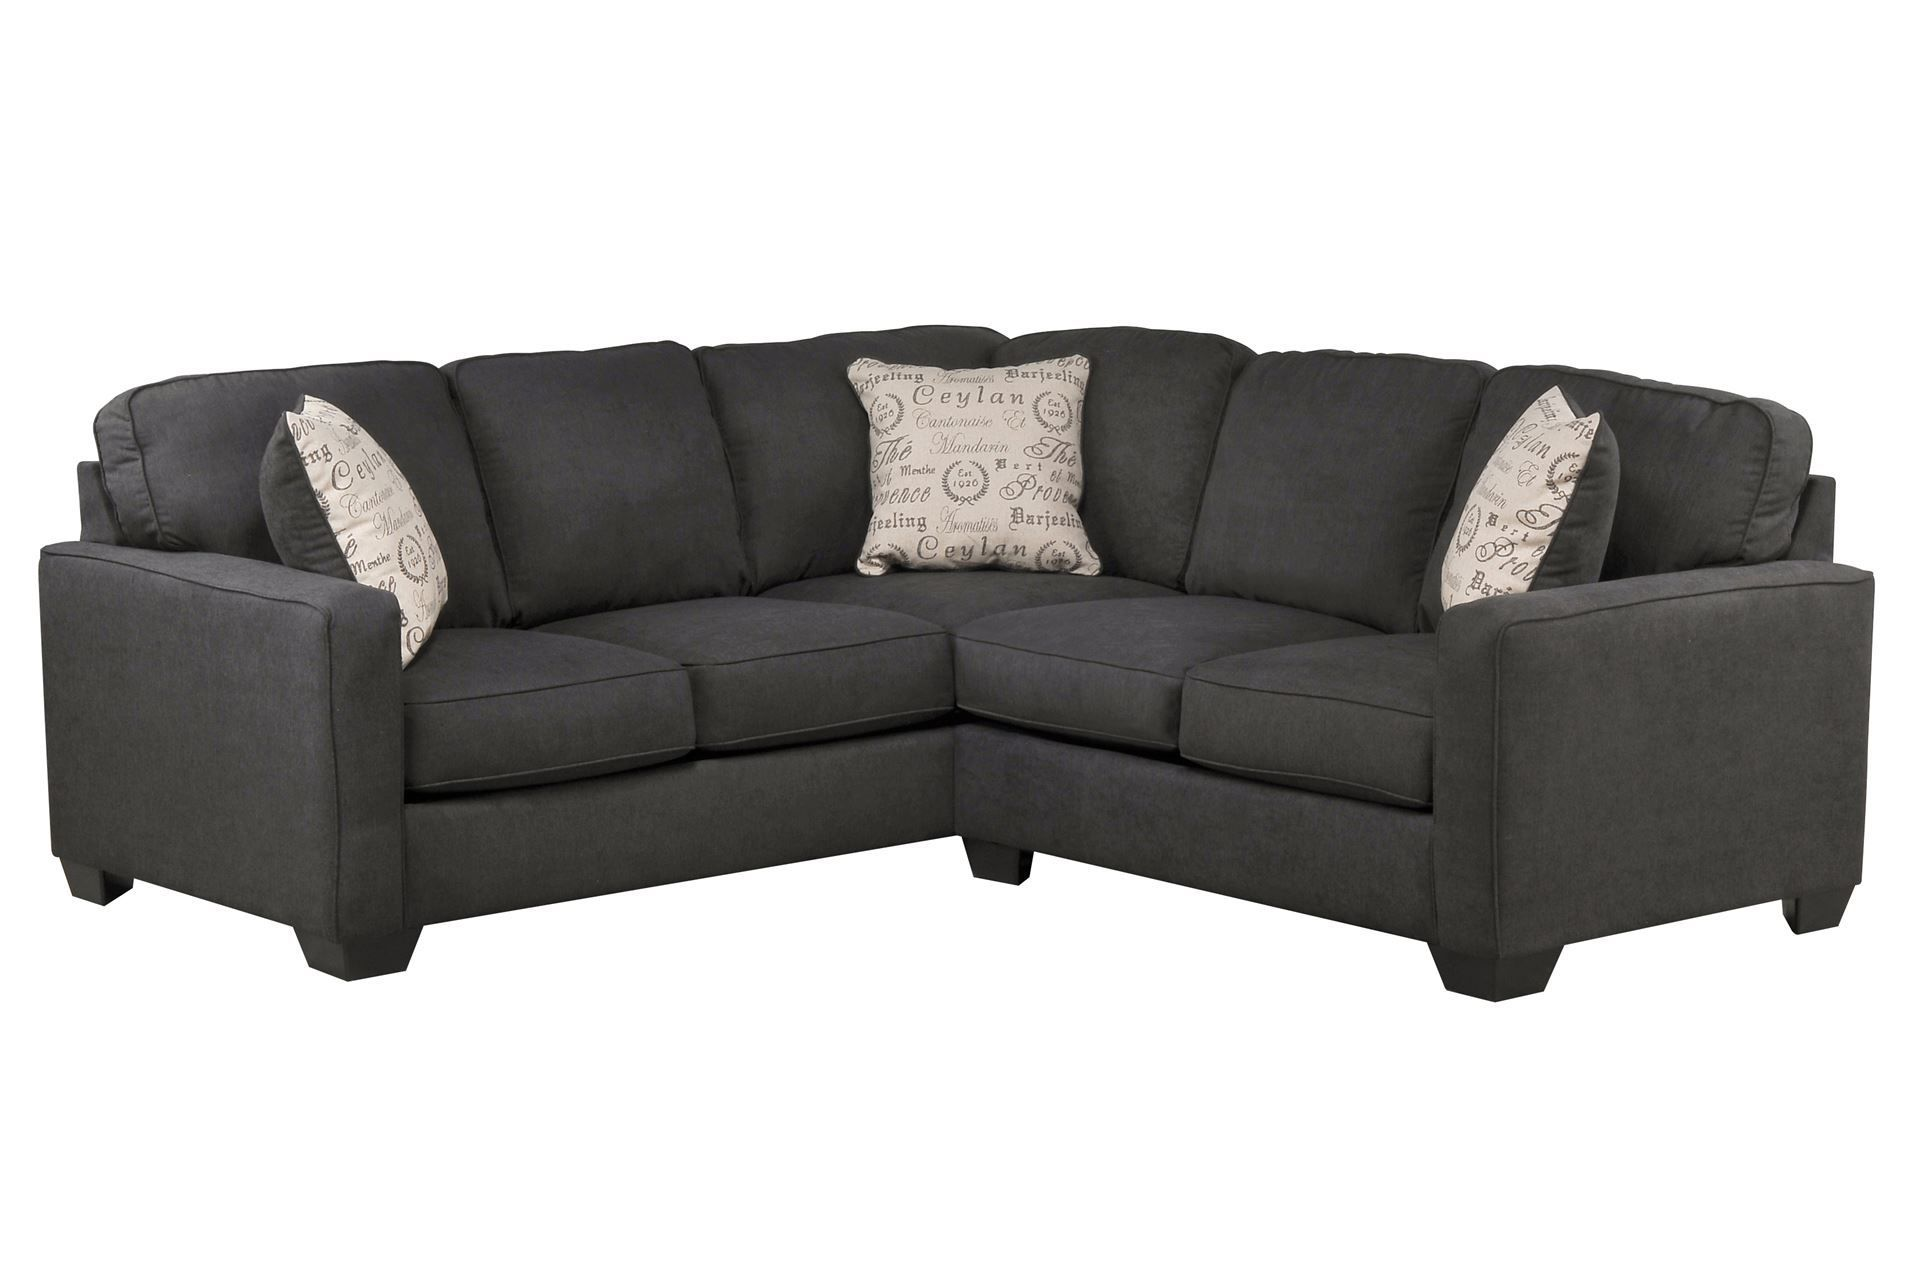 Loft Charcoal Sofa Bed Ivory Sofas Alenya 2 Piece Sectional W Raf Loveseat Must